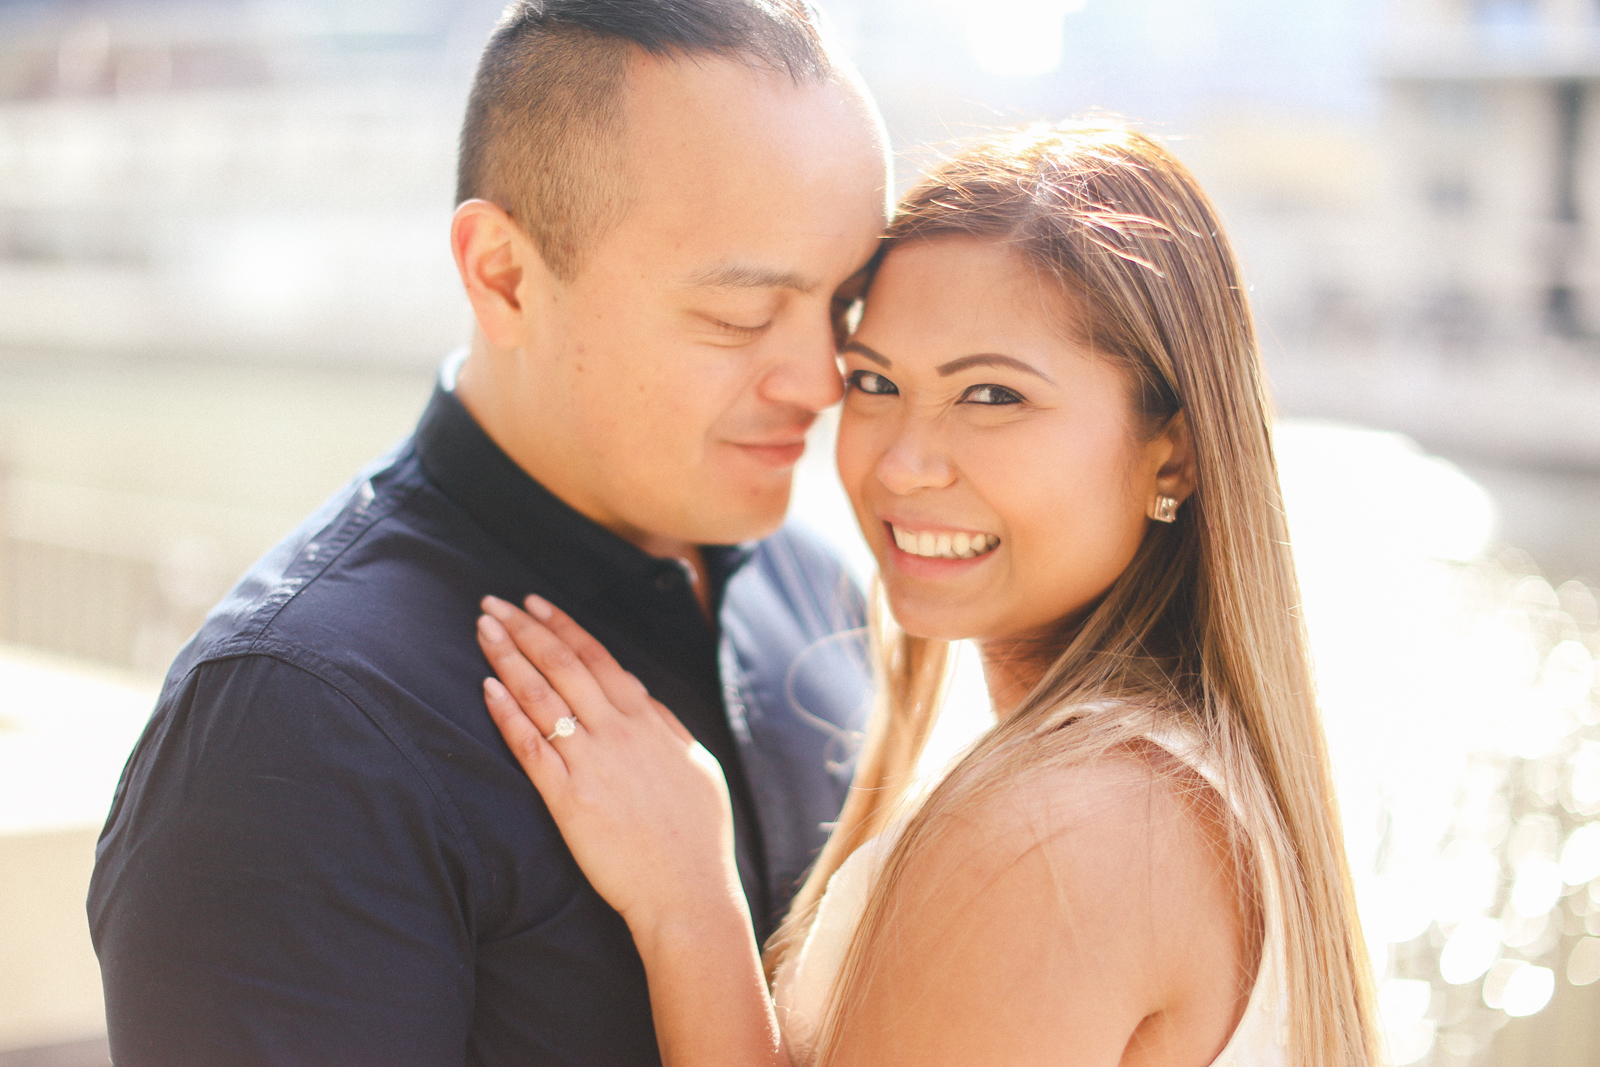 roma-and-dale-engagement-photo-151.jpg